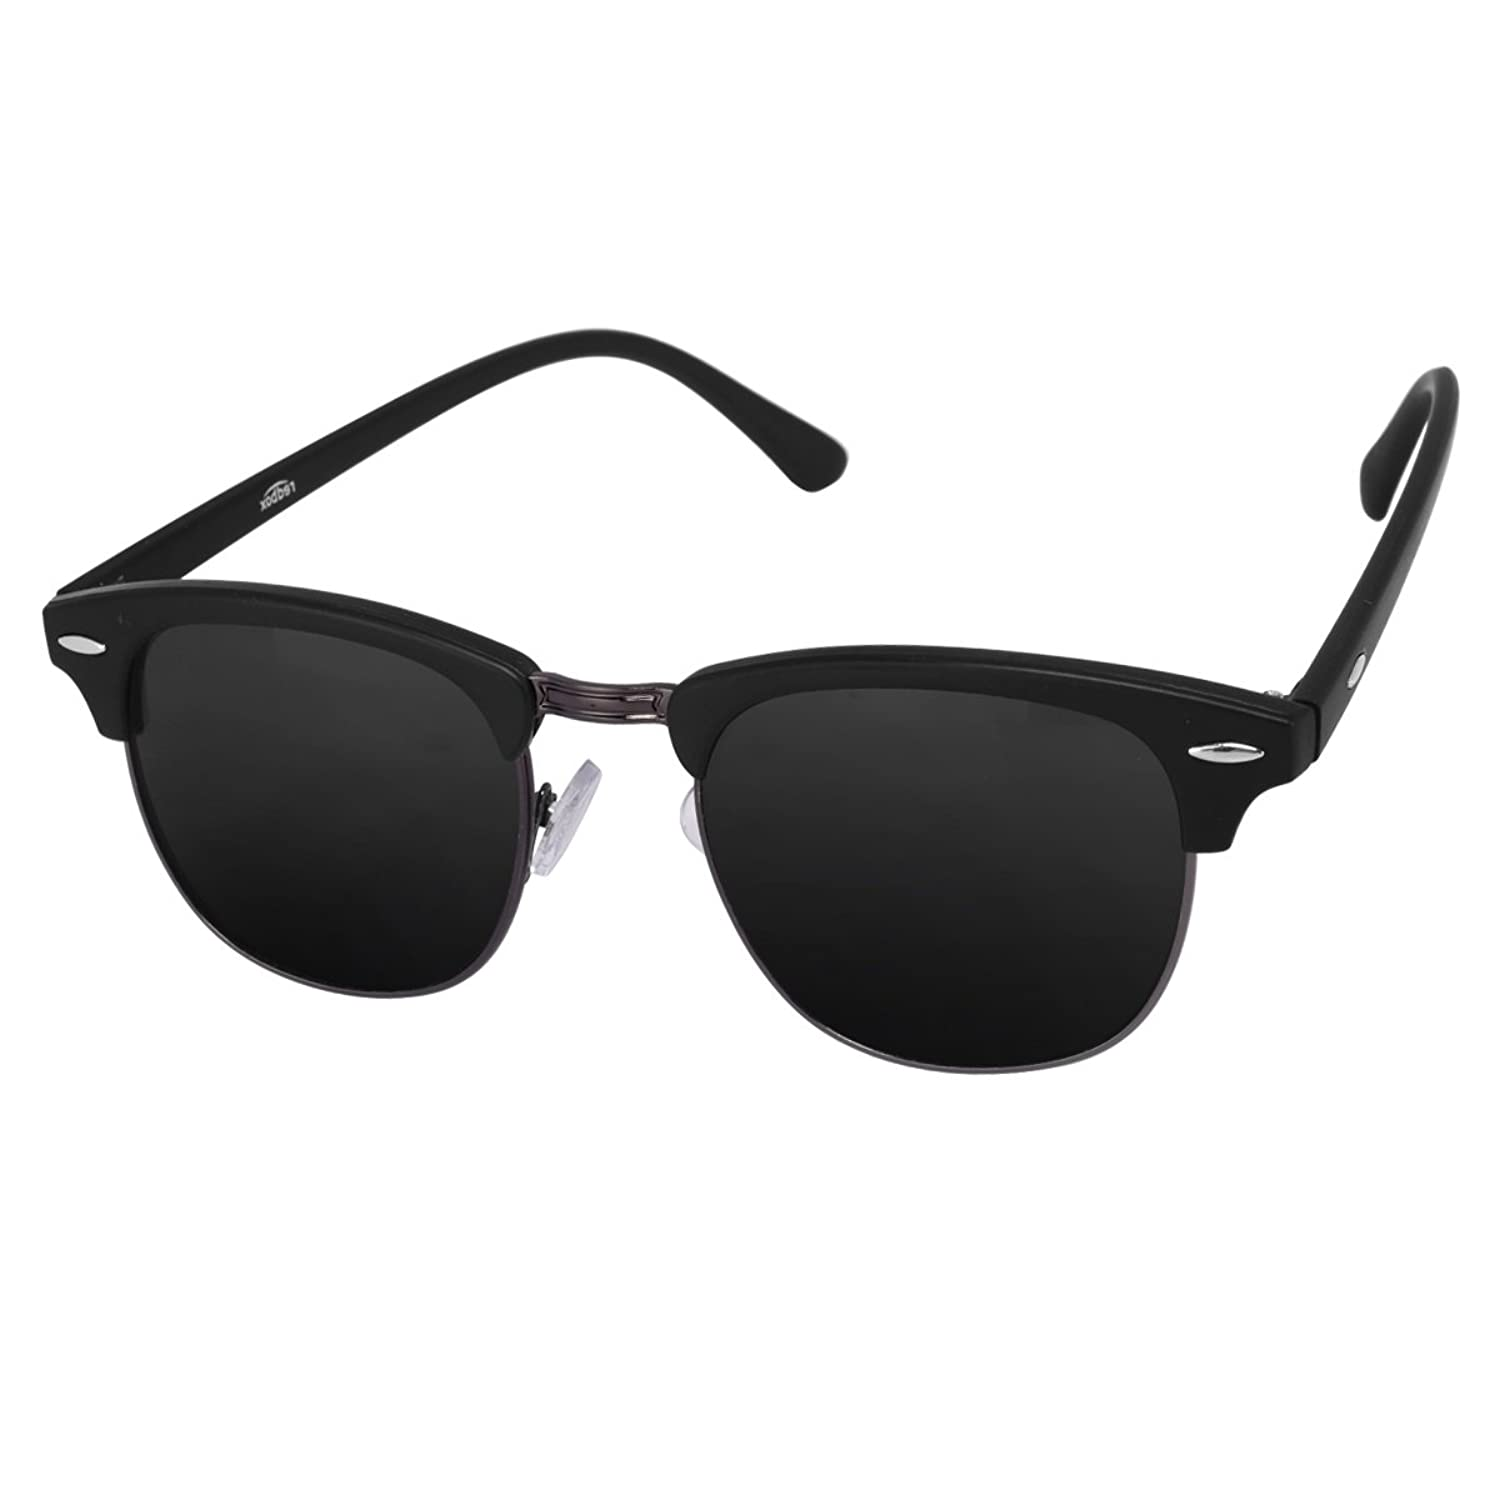 buy wayfarer sunglasses  Sunglasses: Buy Sunglasses Online at Low Prices in India - Amazon.in